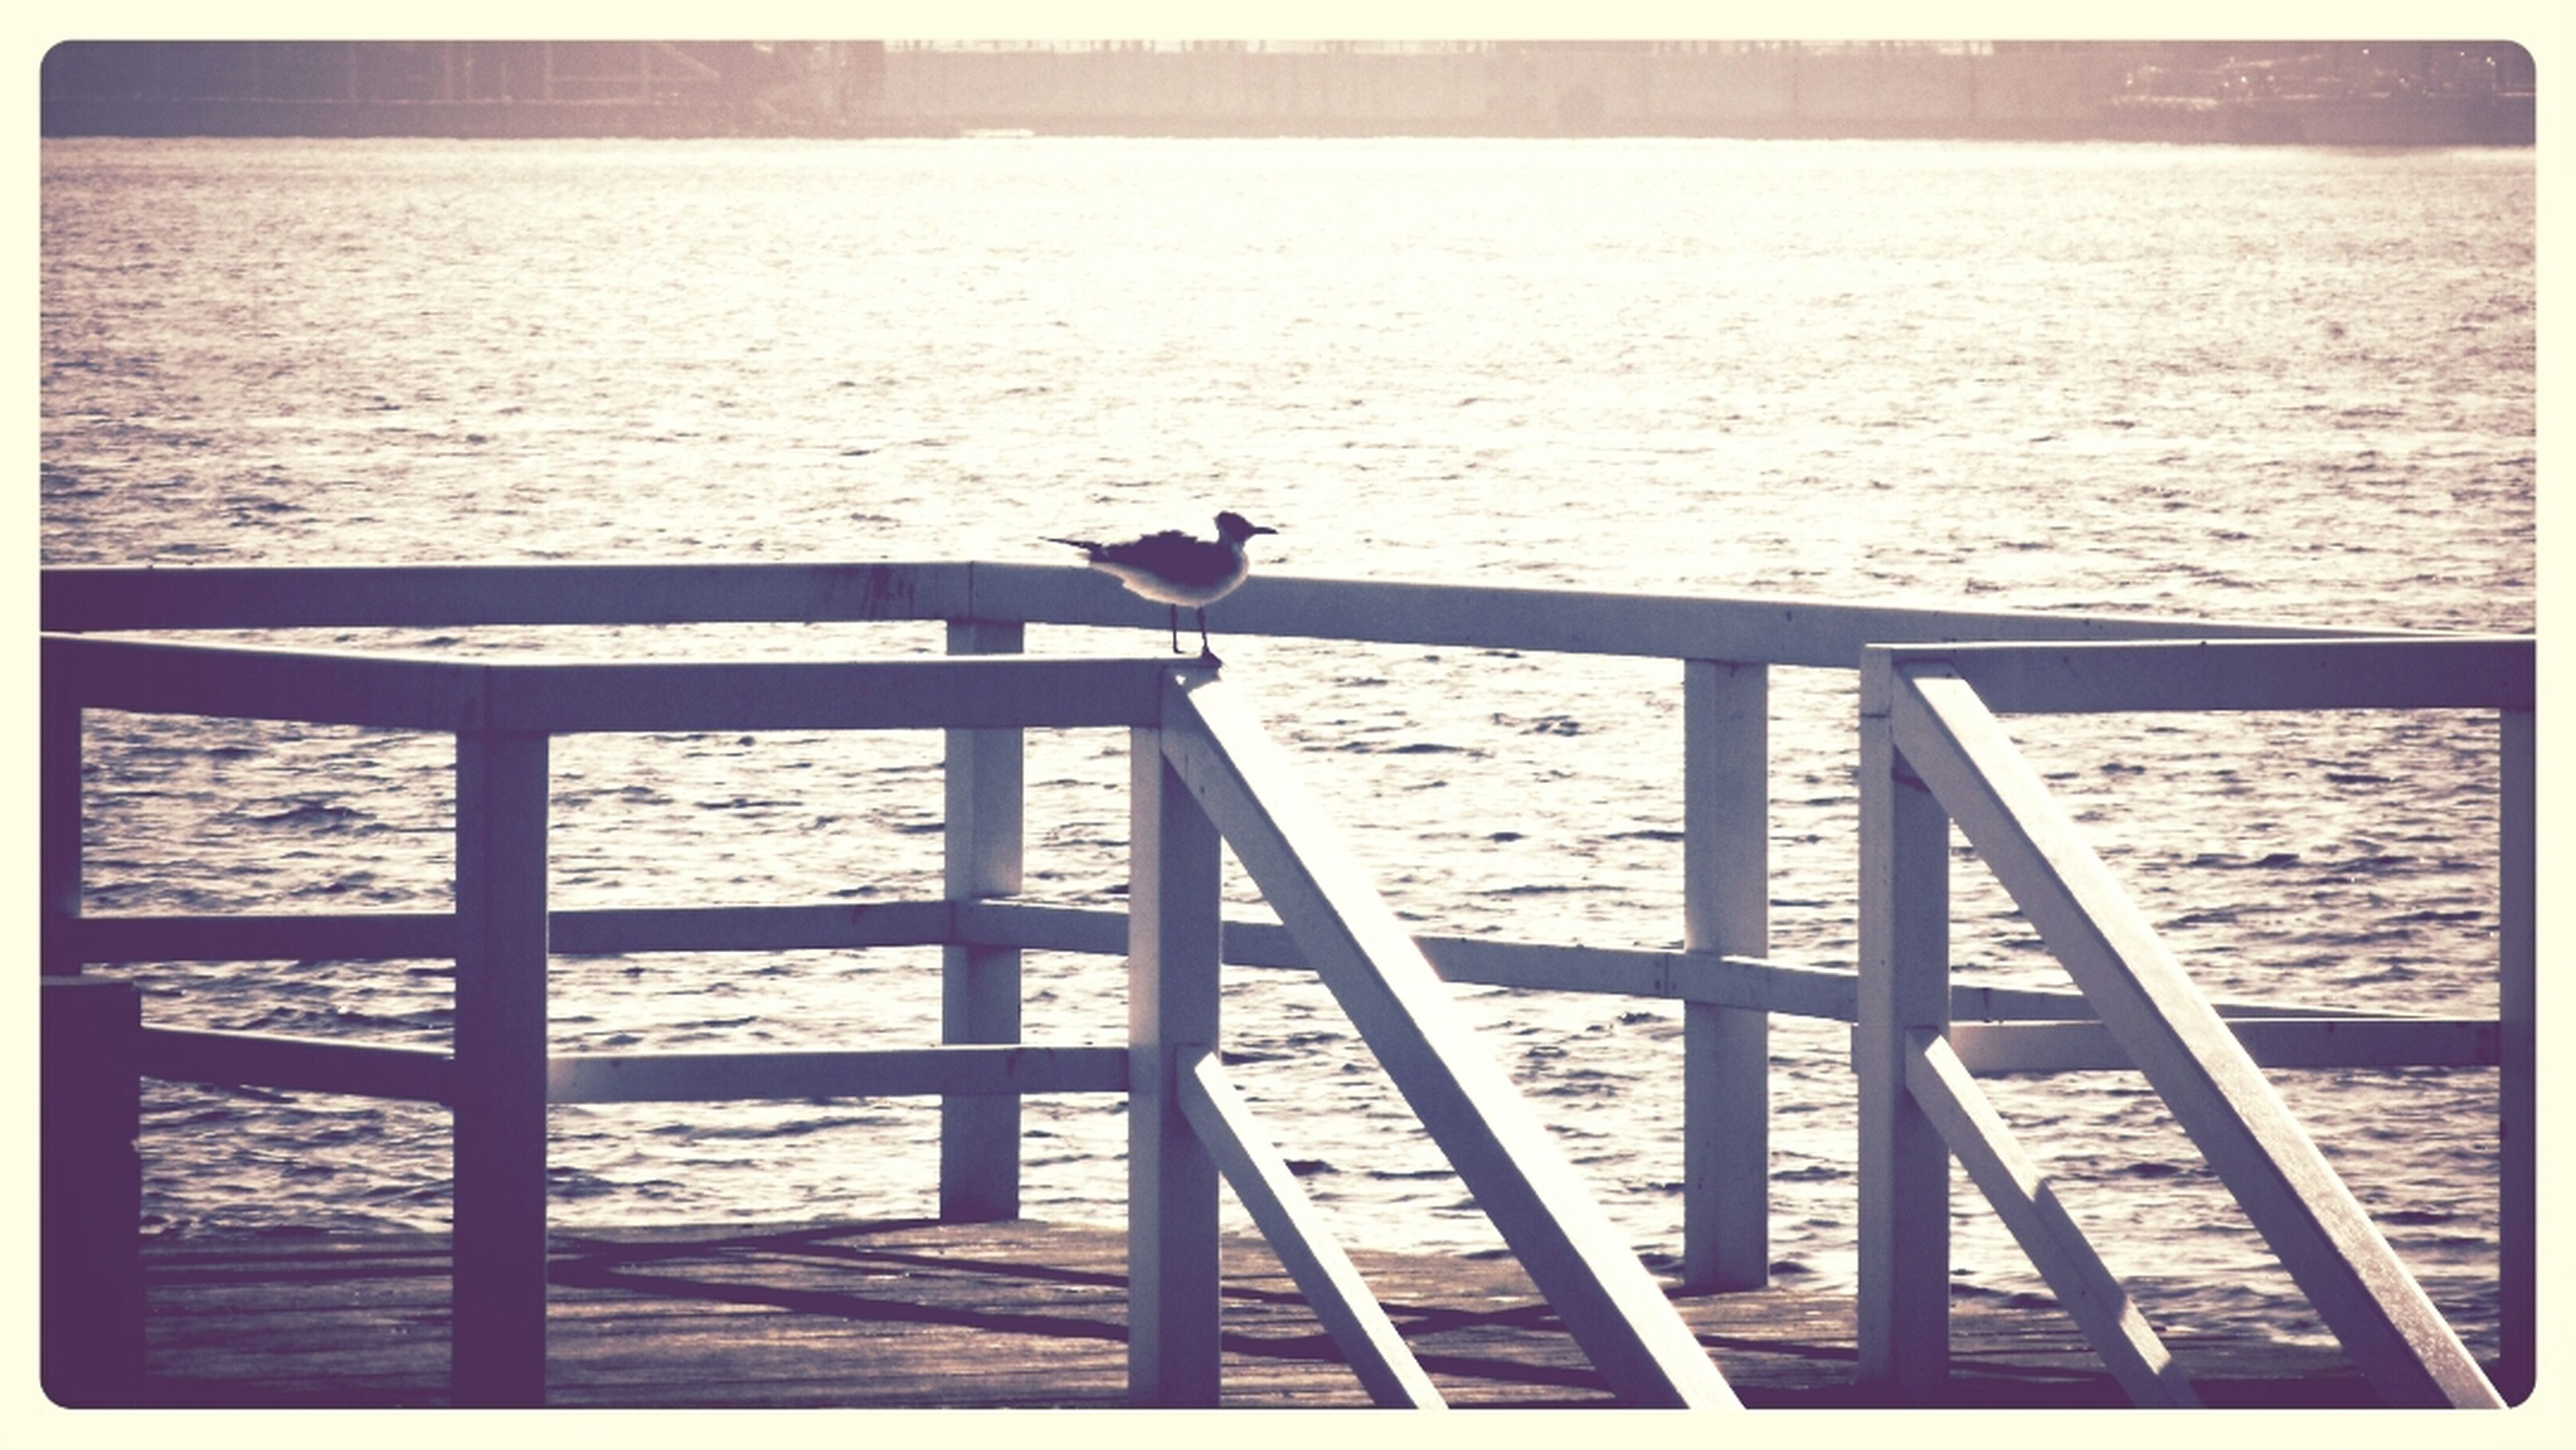 transfer print, water, auto post production filter, sea, railing, pier, built structure, river, rippled, nature, architecture, tranquility, bridge - man made structure, wood - material, tranquil scene, outdoors, sky, bird, connection, scenics